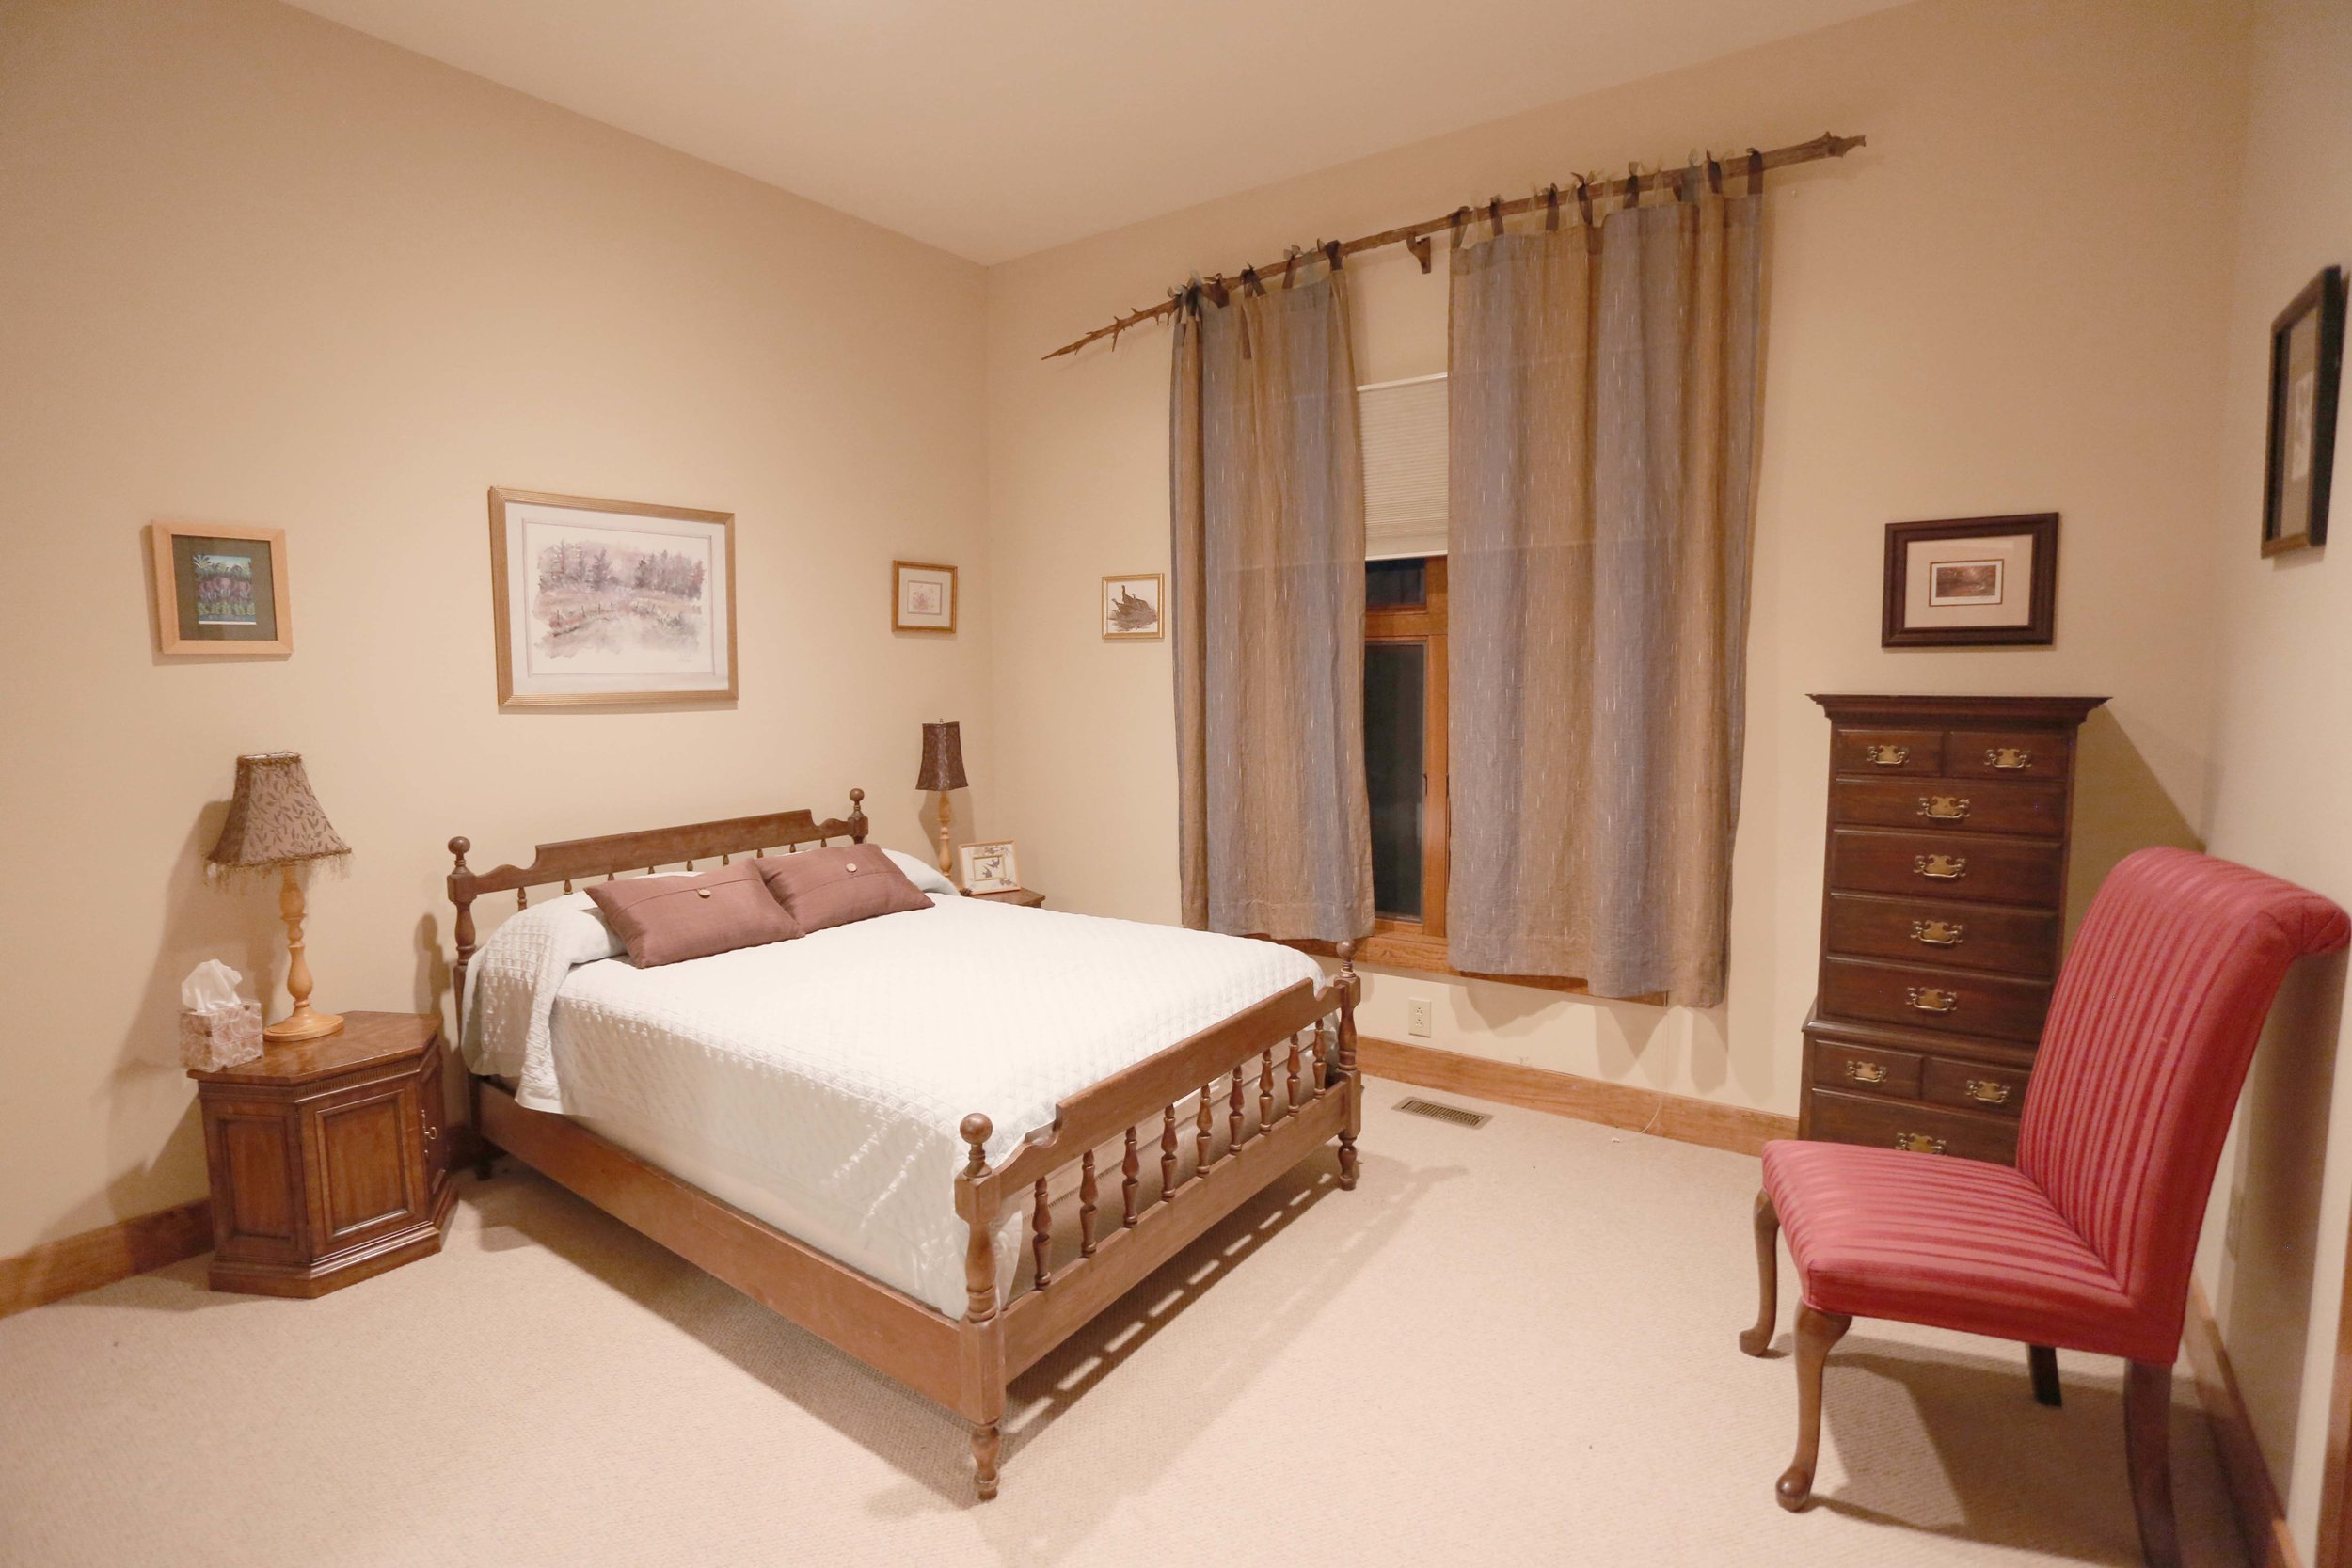 The Circle Lodge Pond View Room has a Queen bed and private full bathroom. Horseshoes, bocci, shuffleboard, fishing pond on site. Organic produces traight from farm steps away.